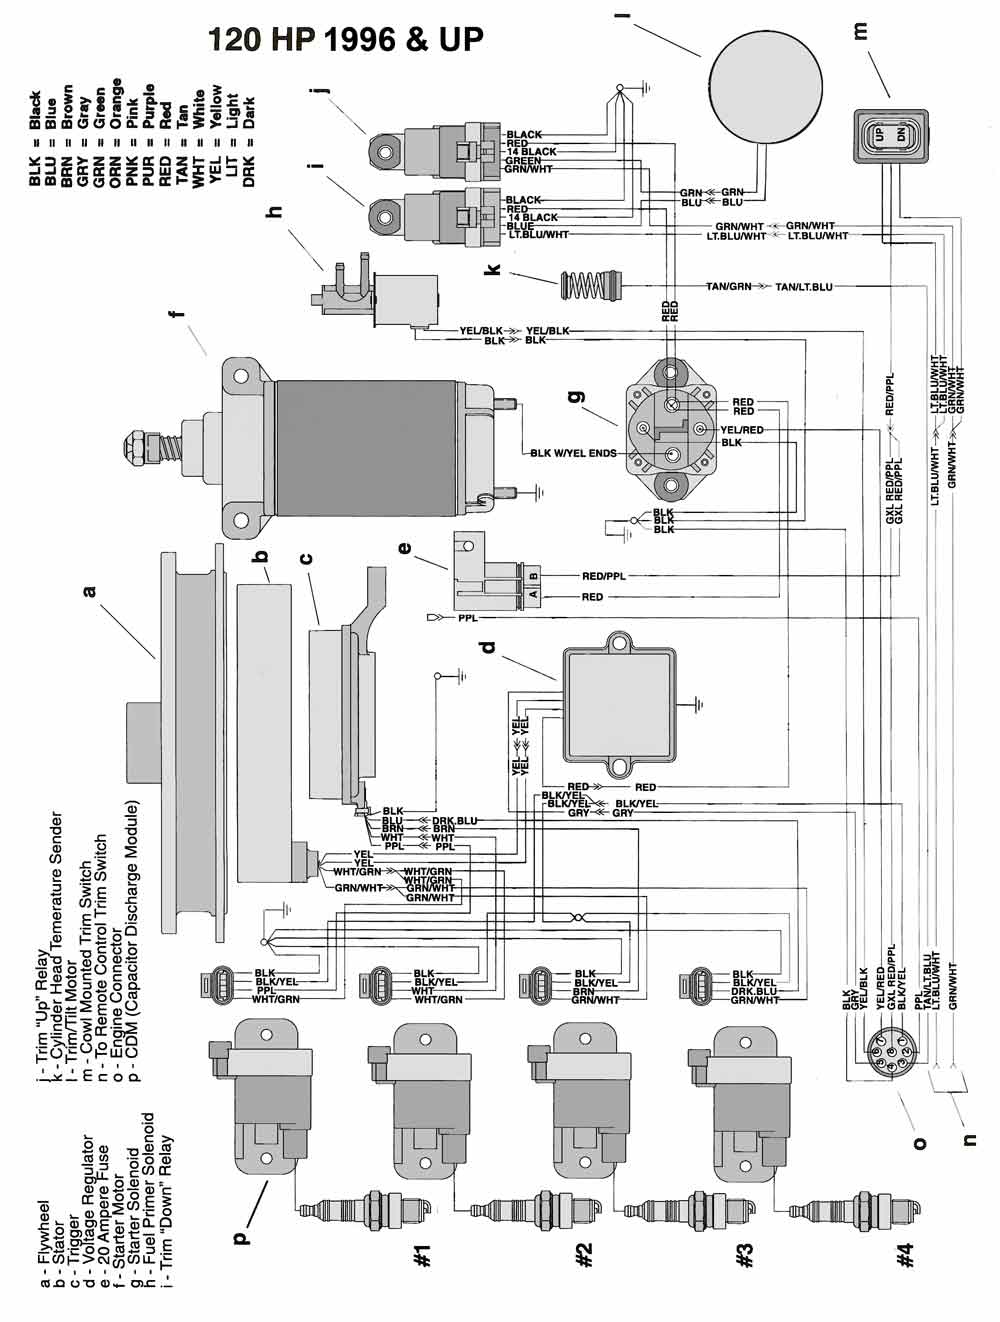 Find Out Here Wiring Diagram For Mercury Outboard Motor